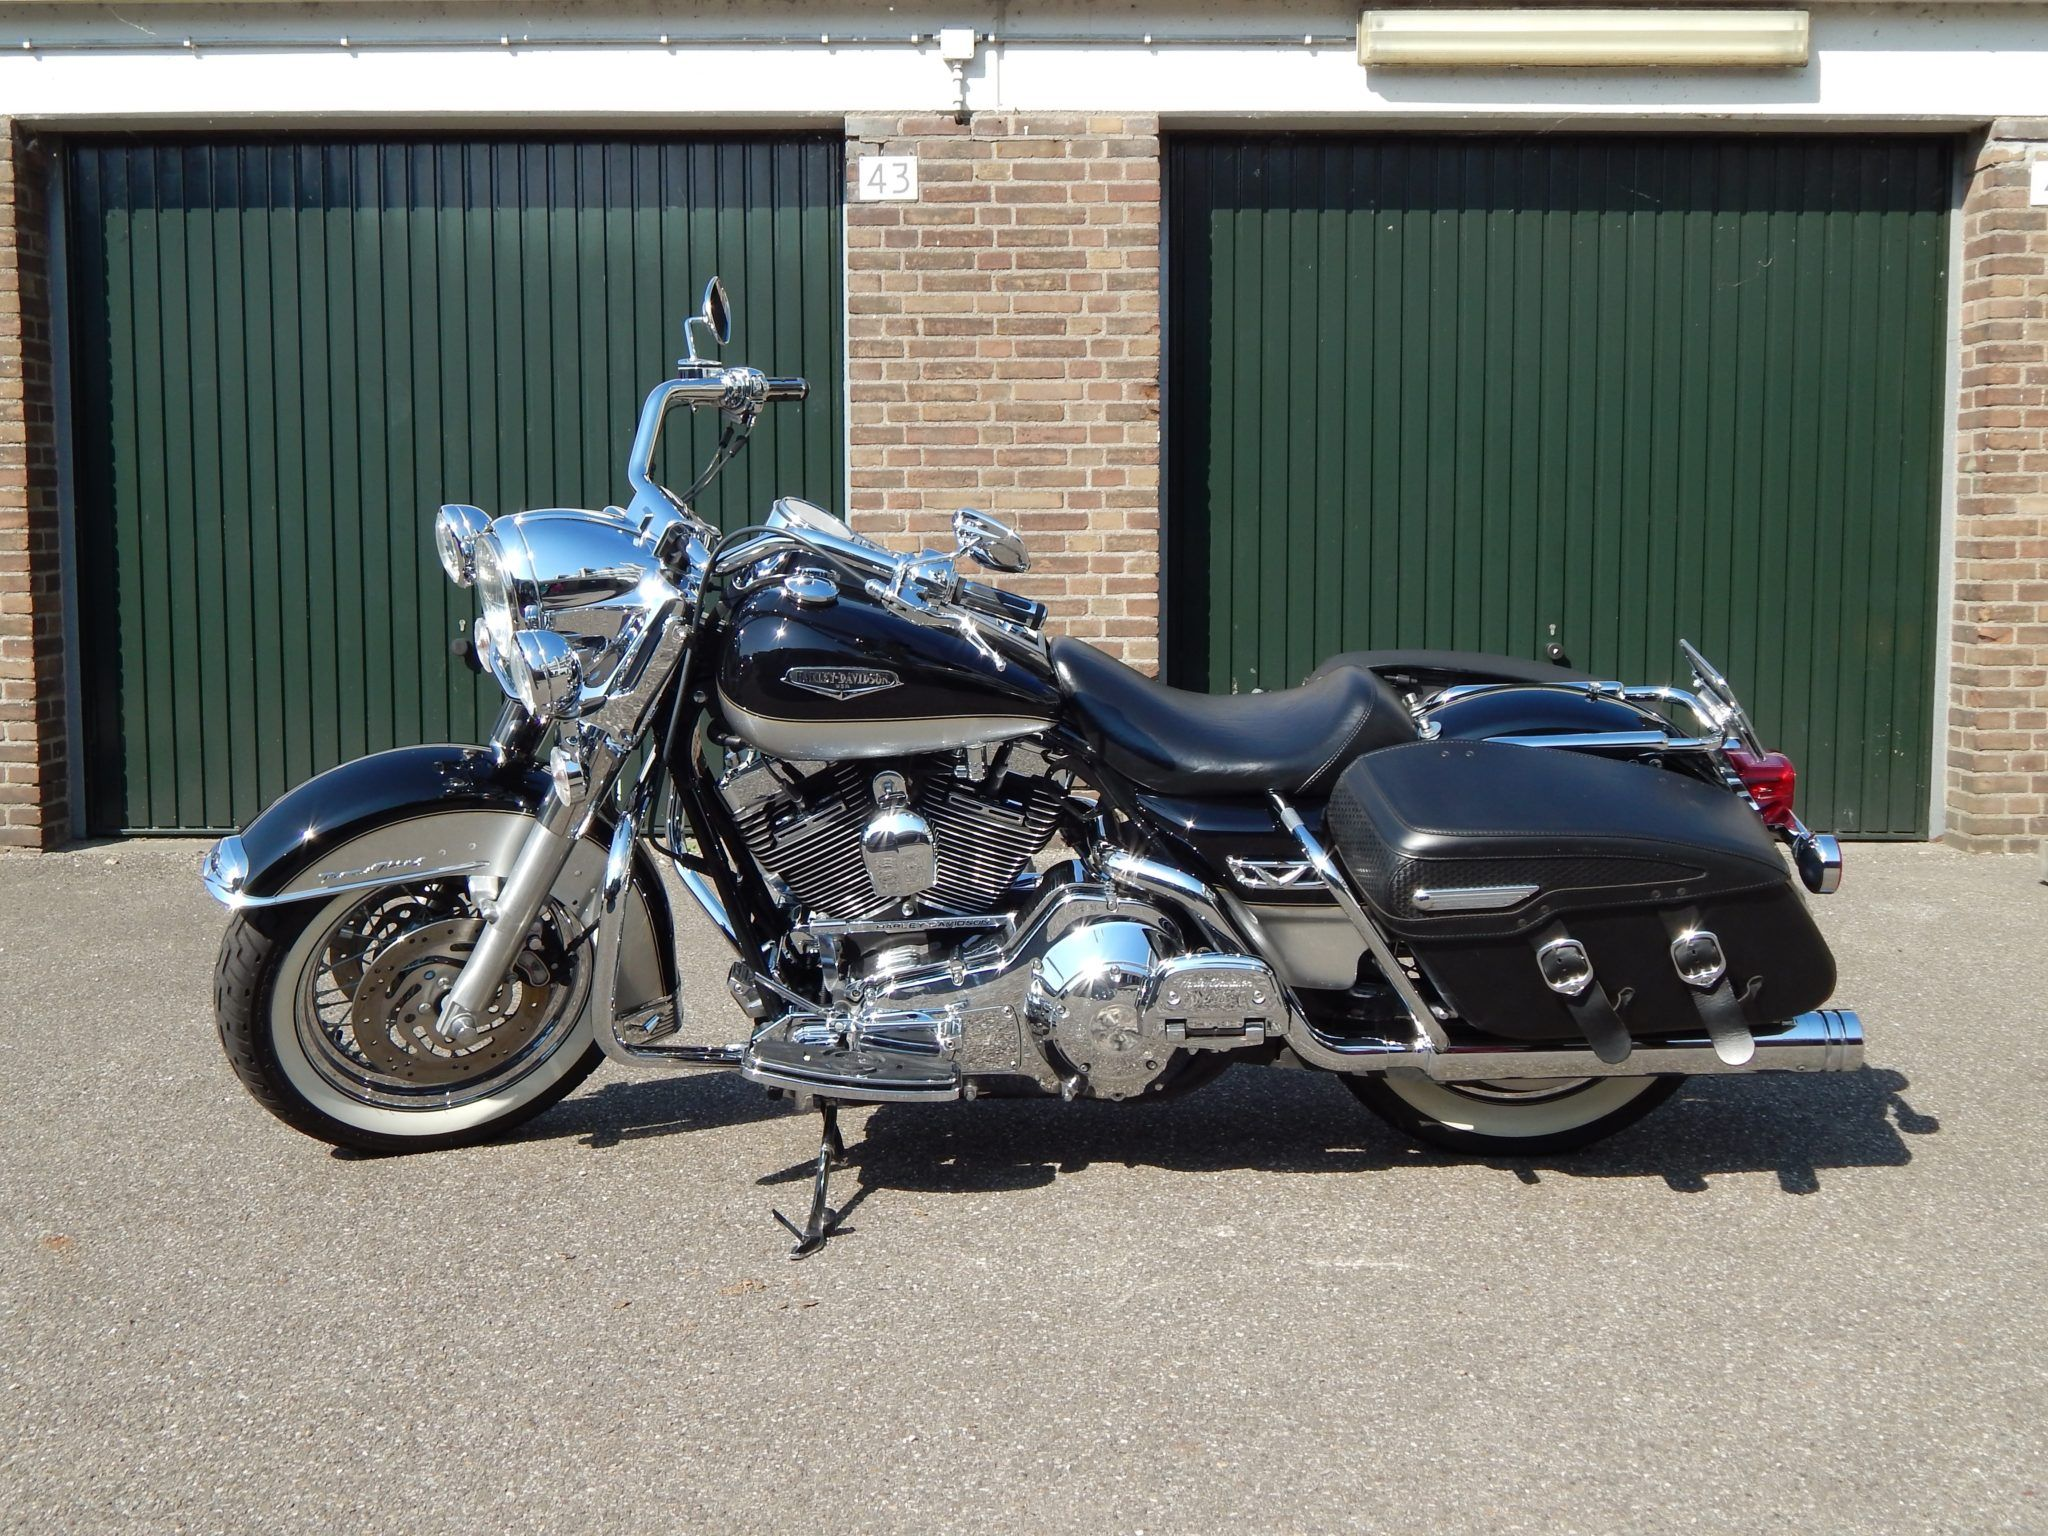 Peak Perfection motor cleaning poetsen Harley Davidson